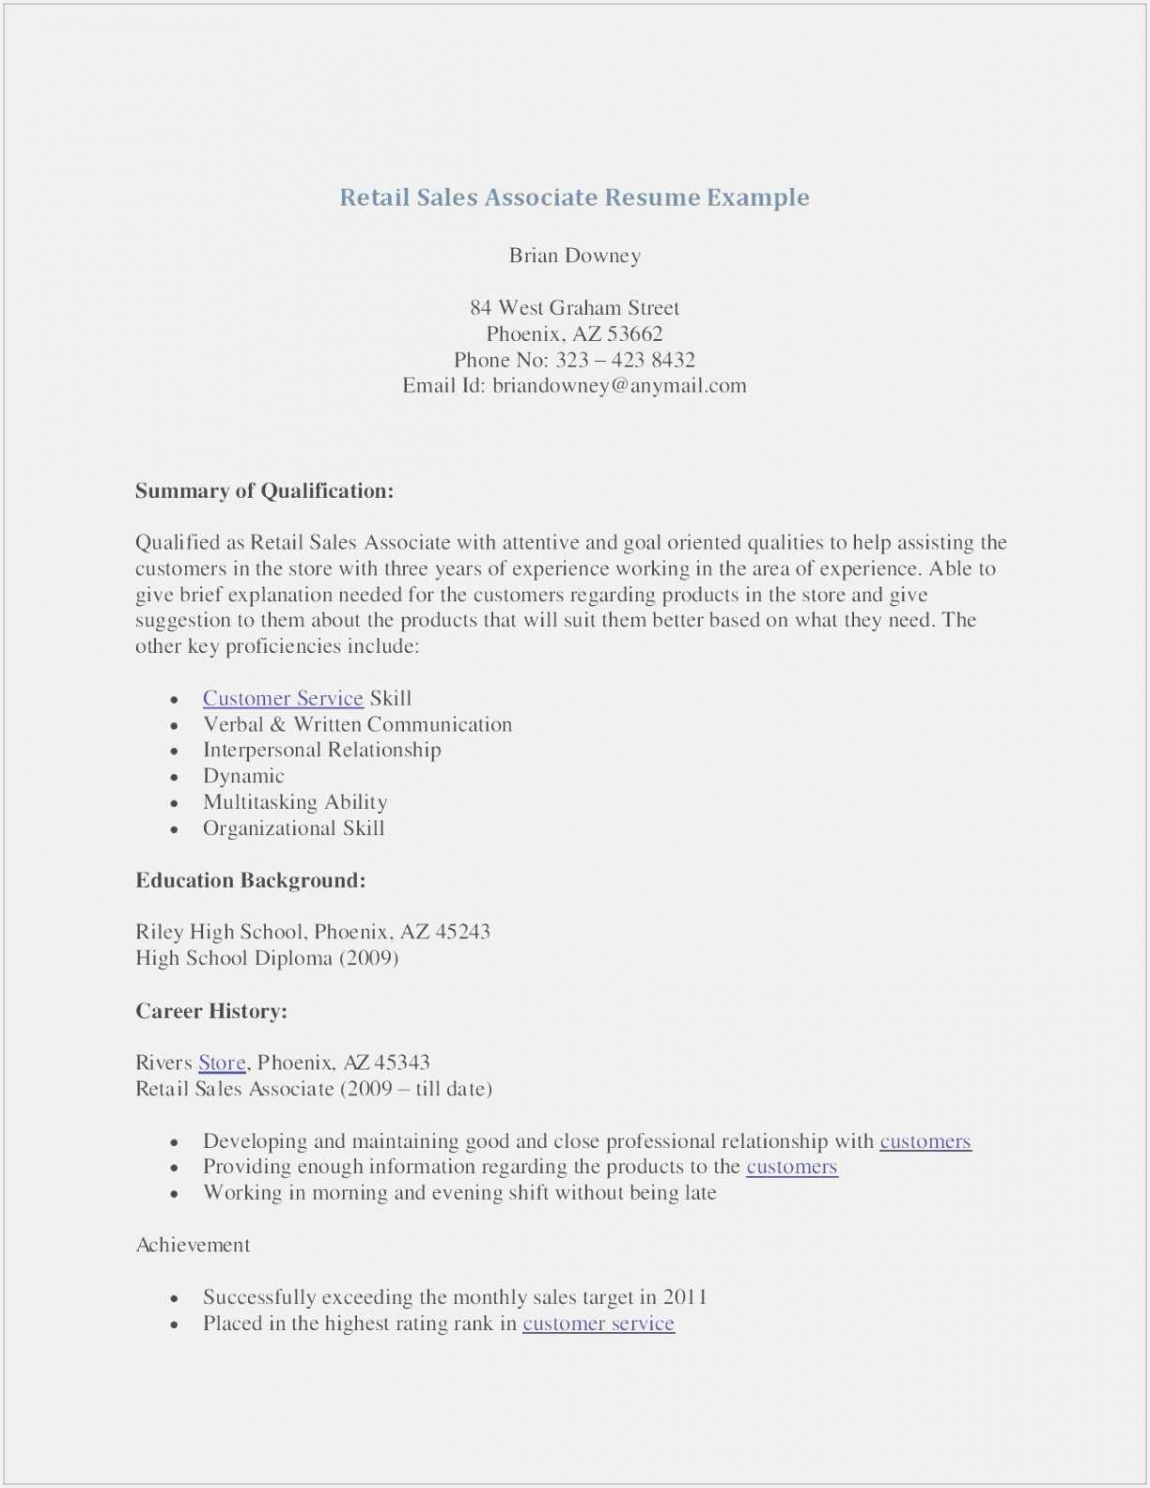 Sales associate Objective for Resume Zhsww Awesome Sales associate Resume Examples Lovely Sample Resume Retail Sales Of 7 Sales associate Objective for Resume